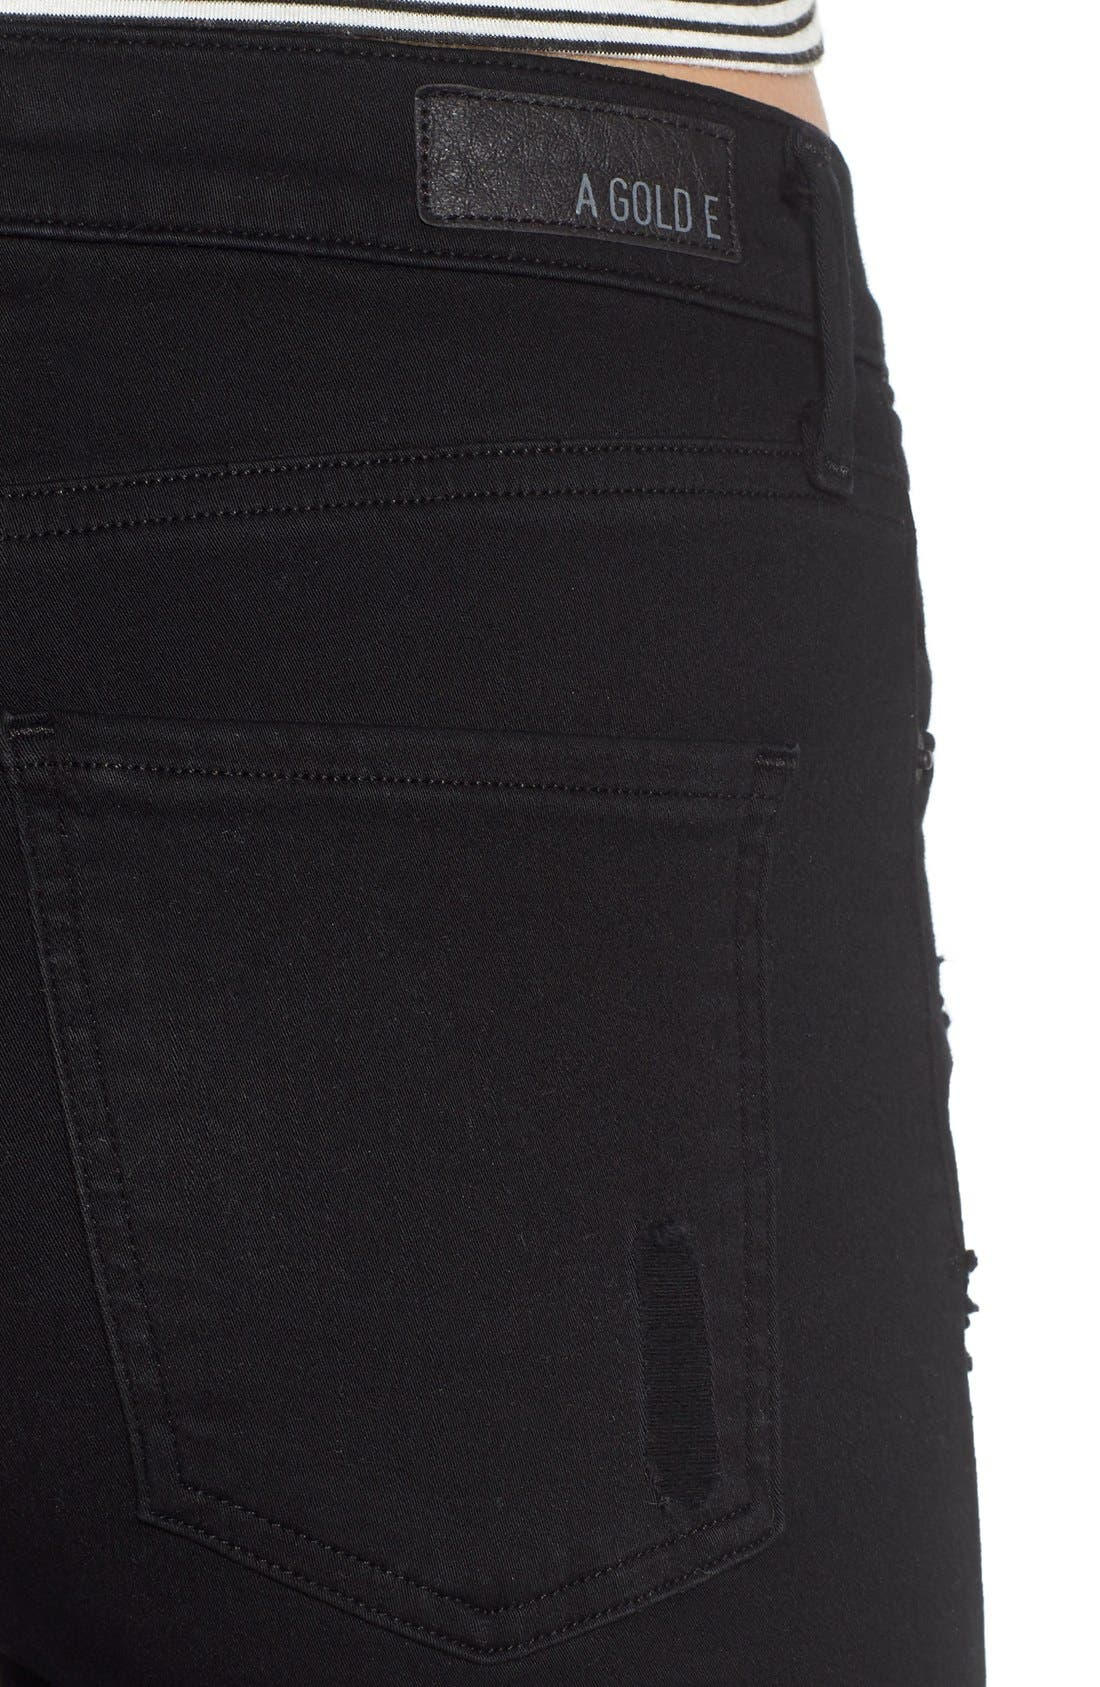 Sophie High Waist Skinny Jeans,                             Alternate thumbnail 4, color,                             017